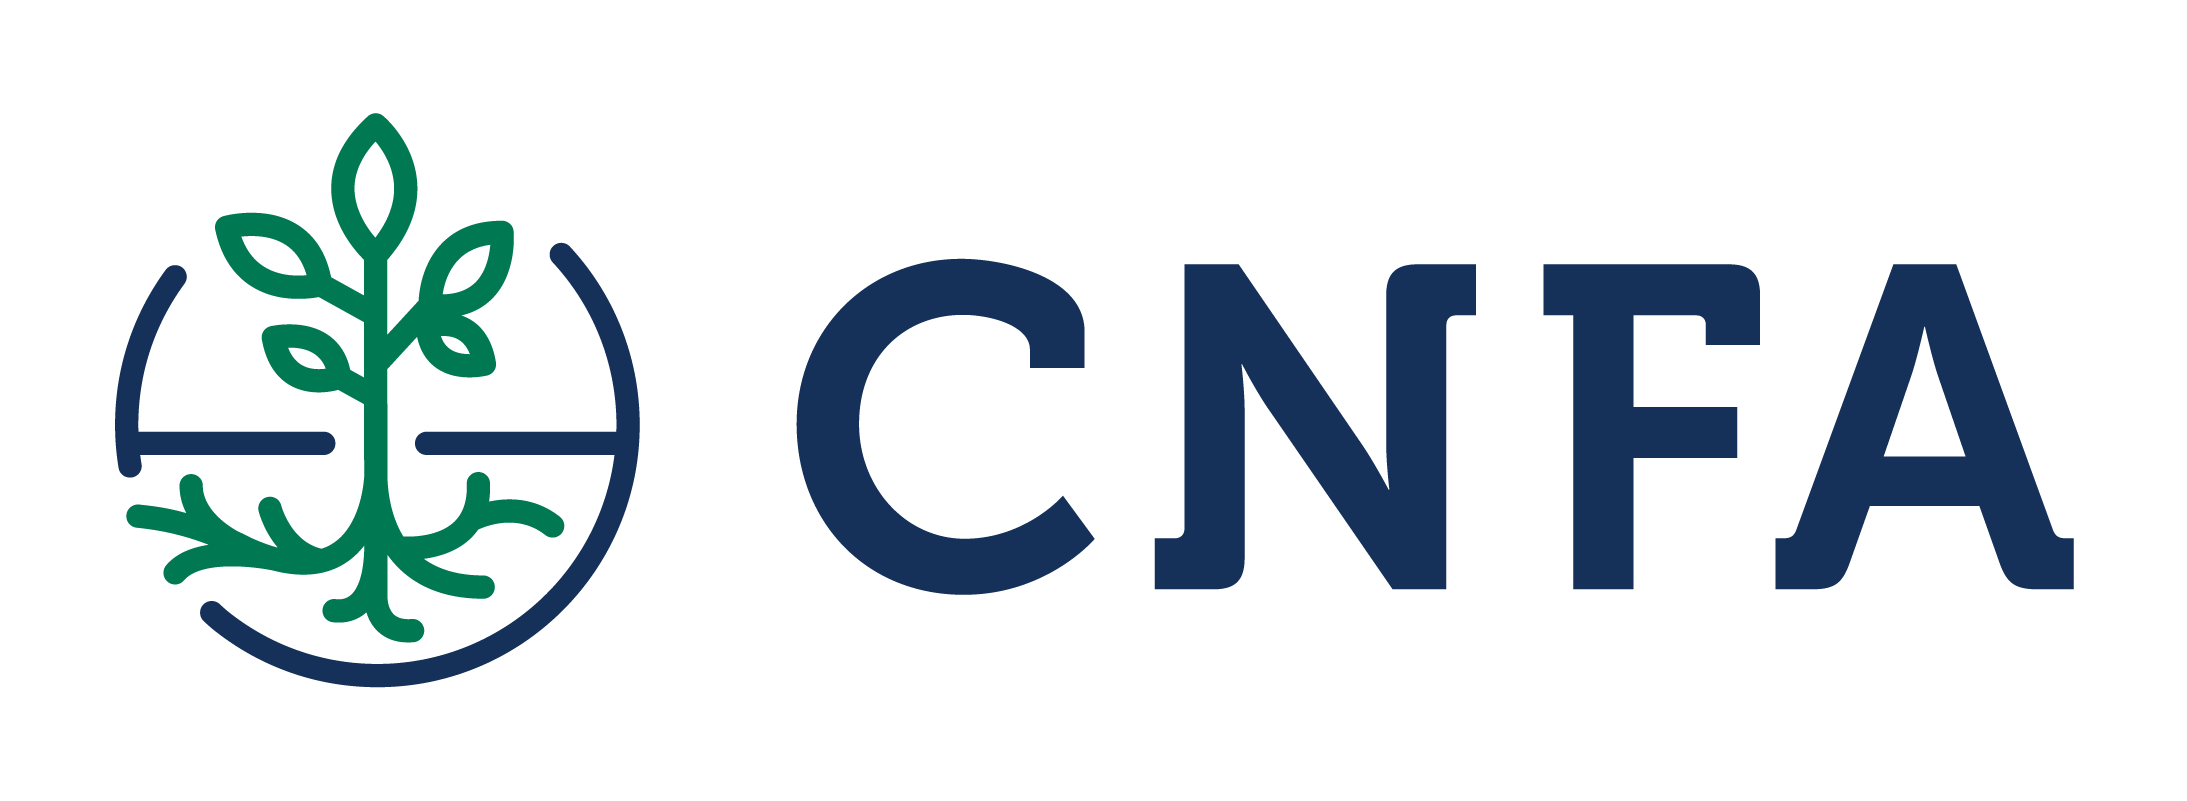 Cultivating New Frontiers in Agriculture (CNFA) logo